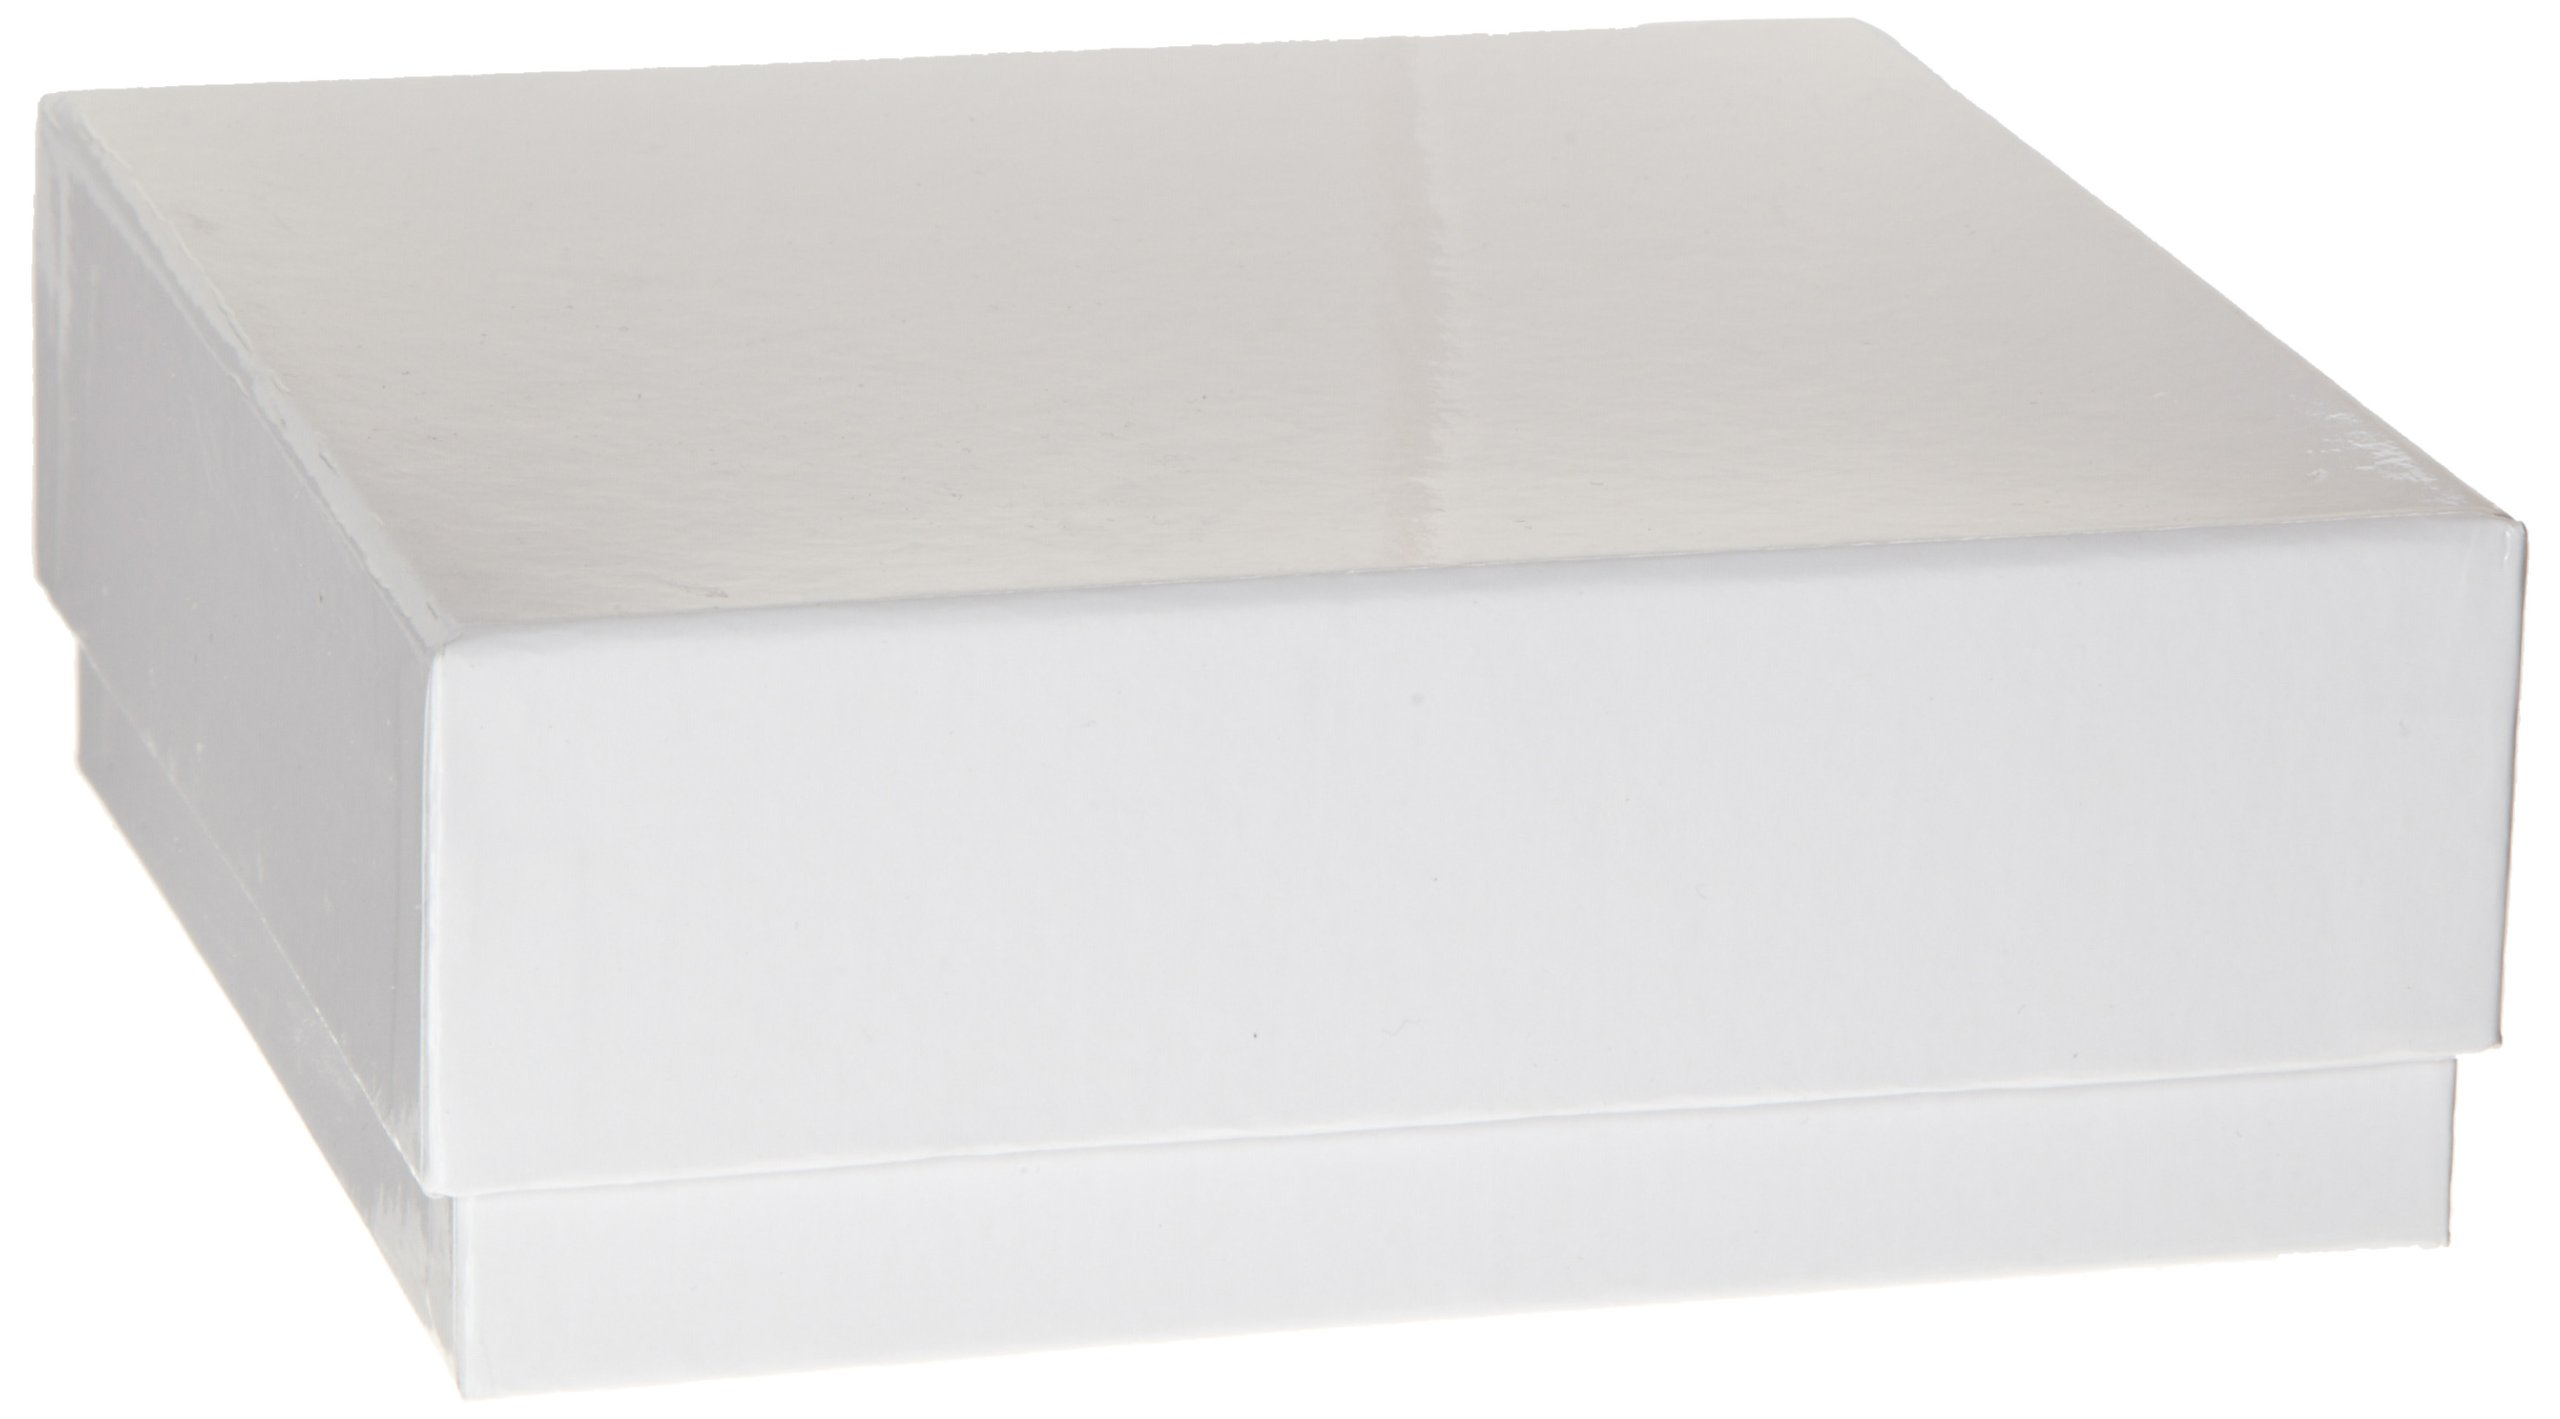 Heathrow Scientific HD2860B White Cardboard Cryovial Box with Lid, 75mm Height (Pack of 12)